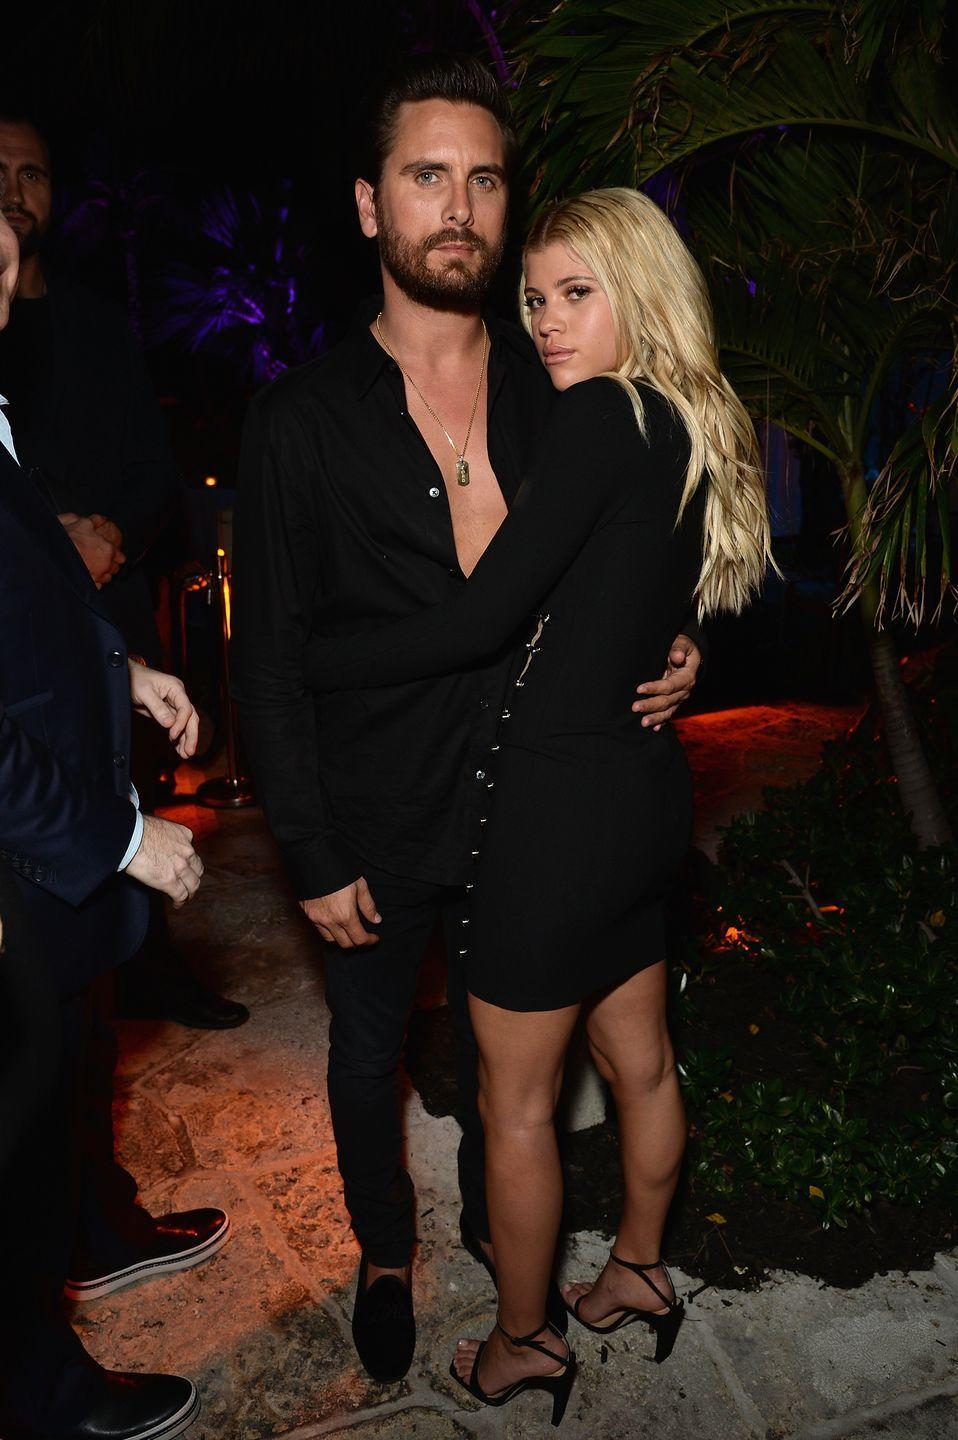 """<p><a href=""""https://www.cosmopolitan.com/entertainment/a22151501/scott-disick-sofia-richie-relationship-timeline/"""" rel=""""nofollow noopener"""" target=""""_blank"""" data-ylk=""""slk:Scott Disick and Sofia Richie's relationship"""" class=""""link rapid-noclick-resp"""">Scott Disick and Sofia Richie's relationship</a> had its highs...and its lows this year. As you may recall, Scott responsibly checked in to rehab in early May to deal with emotional issues, which prompted him and Sofia to take a break while he took care of his mental health. Later that same month, Scott and Sofia's break turned into a full-on breakup...and it apparently had a lot to do with <a href=""""https://www.cosmopolitan.com/entertainment/celebs/a32718827/sofia-richie-knew-scott-disick-in-love-kourtney-kardashian/"""" rel=""""nofollow noopener"""" target=""""_blank"""" data-ylk=""""slk:him still having a strong connection with his ex Kourtney Kardashian"""" class=""""link rapid-noclick-resp"""">him still having a strong connection with his ex Kourtney Kardashian</a>. Scott and Sofia had a brief """"let's get back together!"""" spell in July, but <a href=""""https://www.cosmopolitan.com/entertainment/celebs/a33654764/scott-disick-breaks-up-sofia-richie-not-speaking/"""" rel=""""nofollow noopener"""" target=""""_blank"""" data-ylk=""""slk:they called it quits for good in August"""" class=""""link rapid-noclick-resp"""">they called it quits for good in August</a>.</p>"""